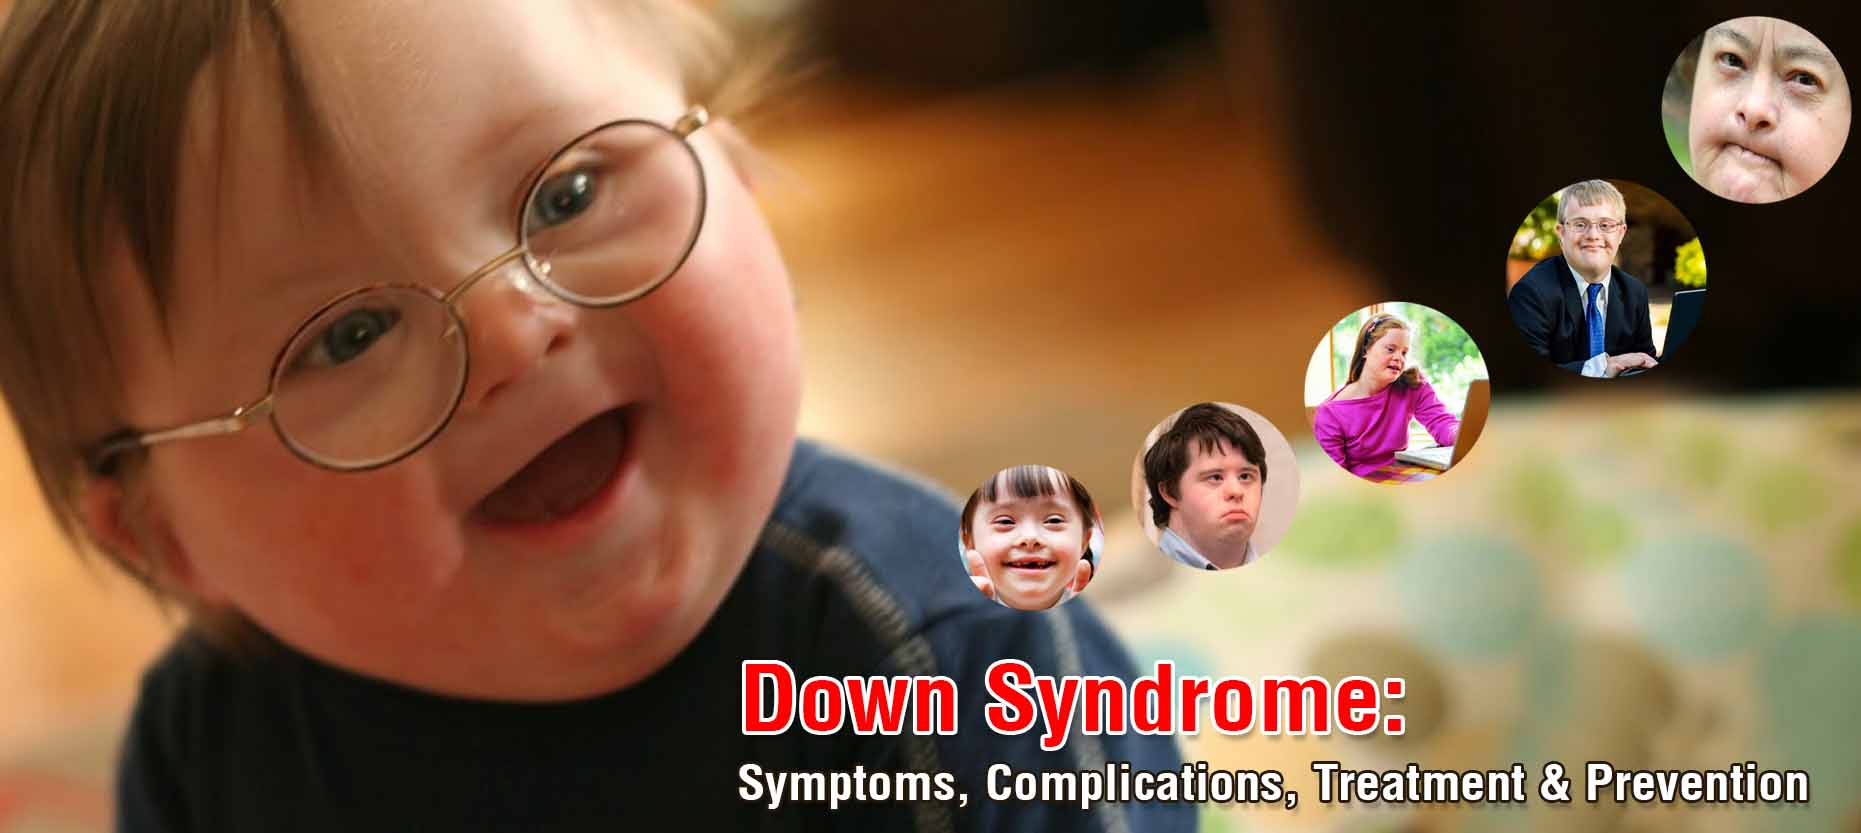 Down Syndrome: Symptoms, Complications, Treatment & Prevention